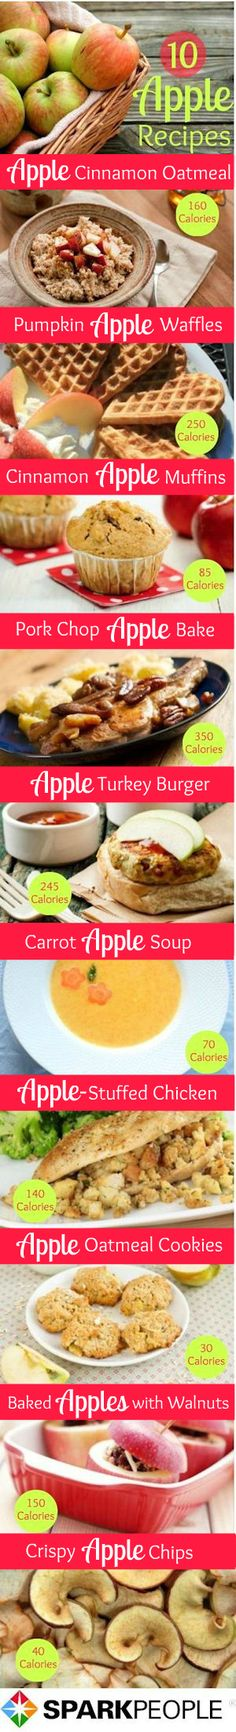 The best #apple #recipes of the season. YUM! Healthy, too! | via @SparkPeople #healthy #recipes #eatbetter